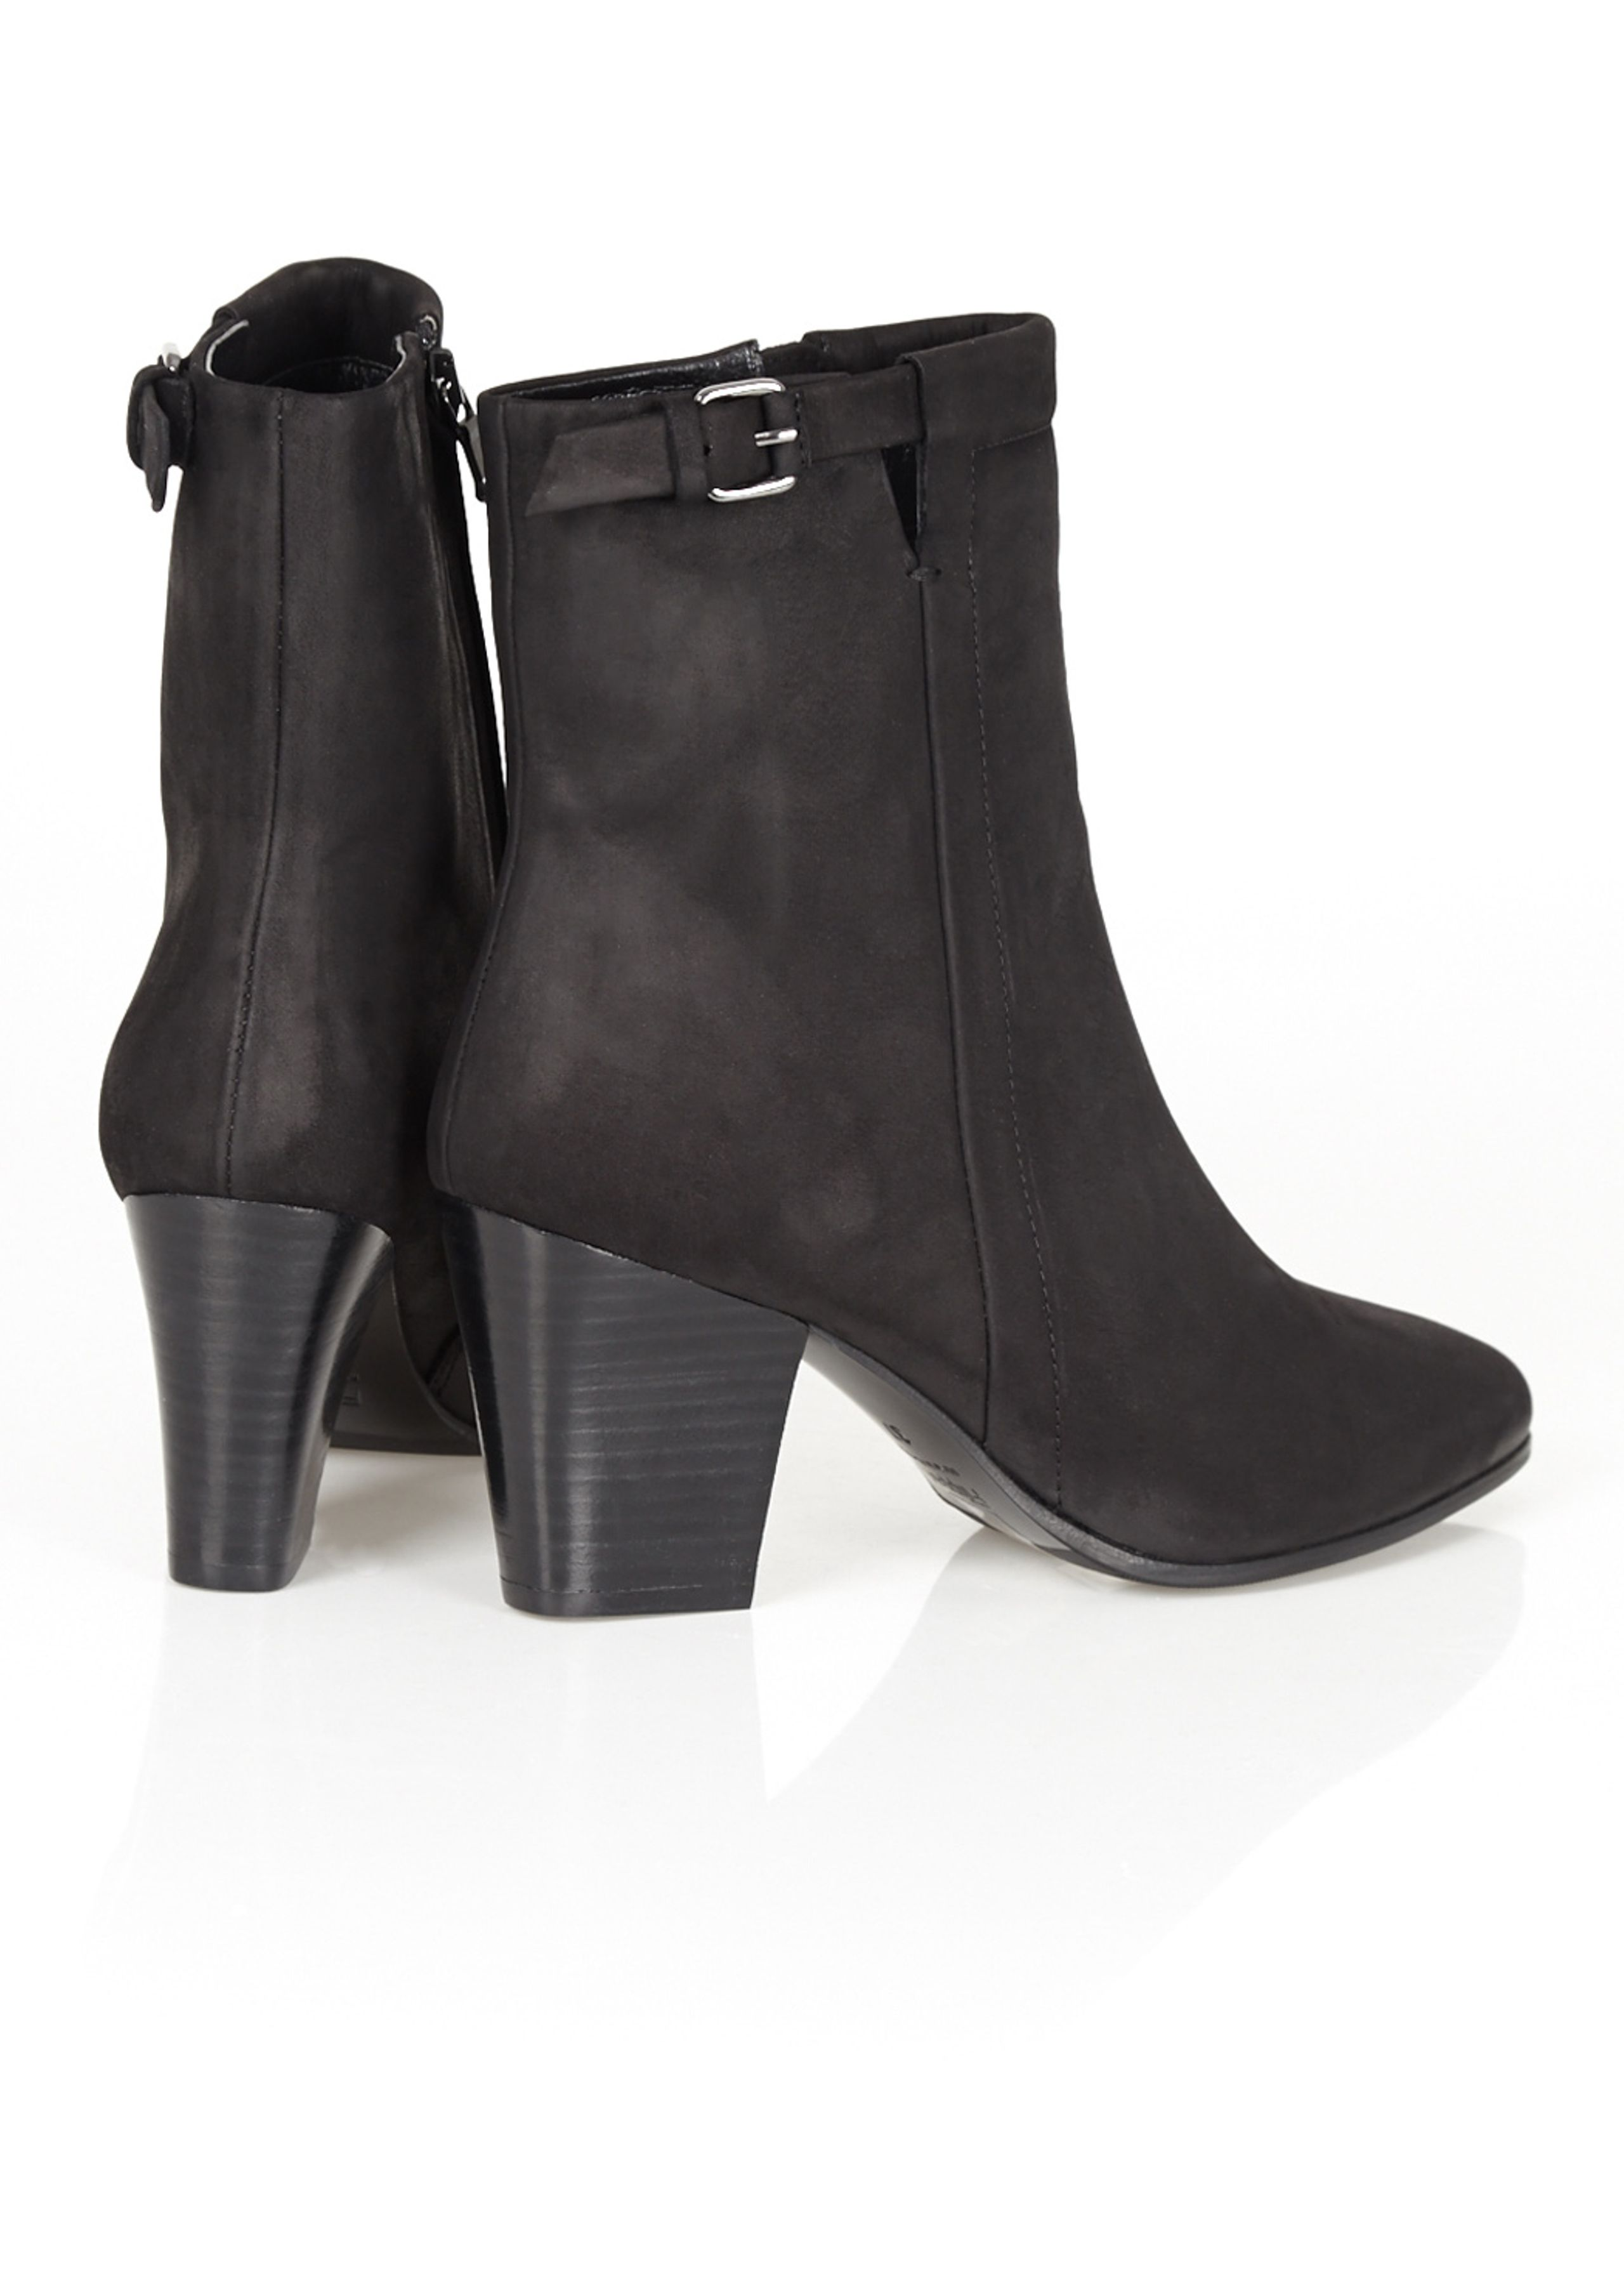 Lily Bootie - Ankle boots